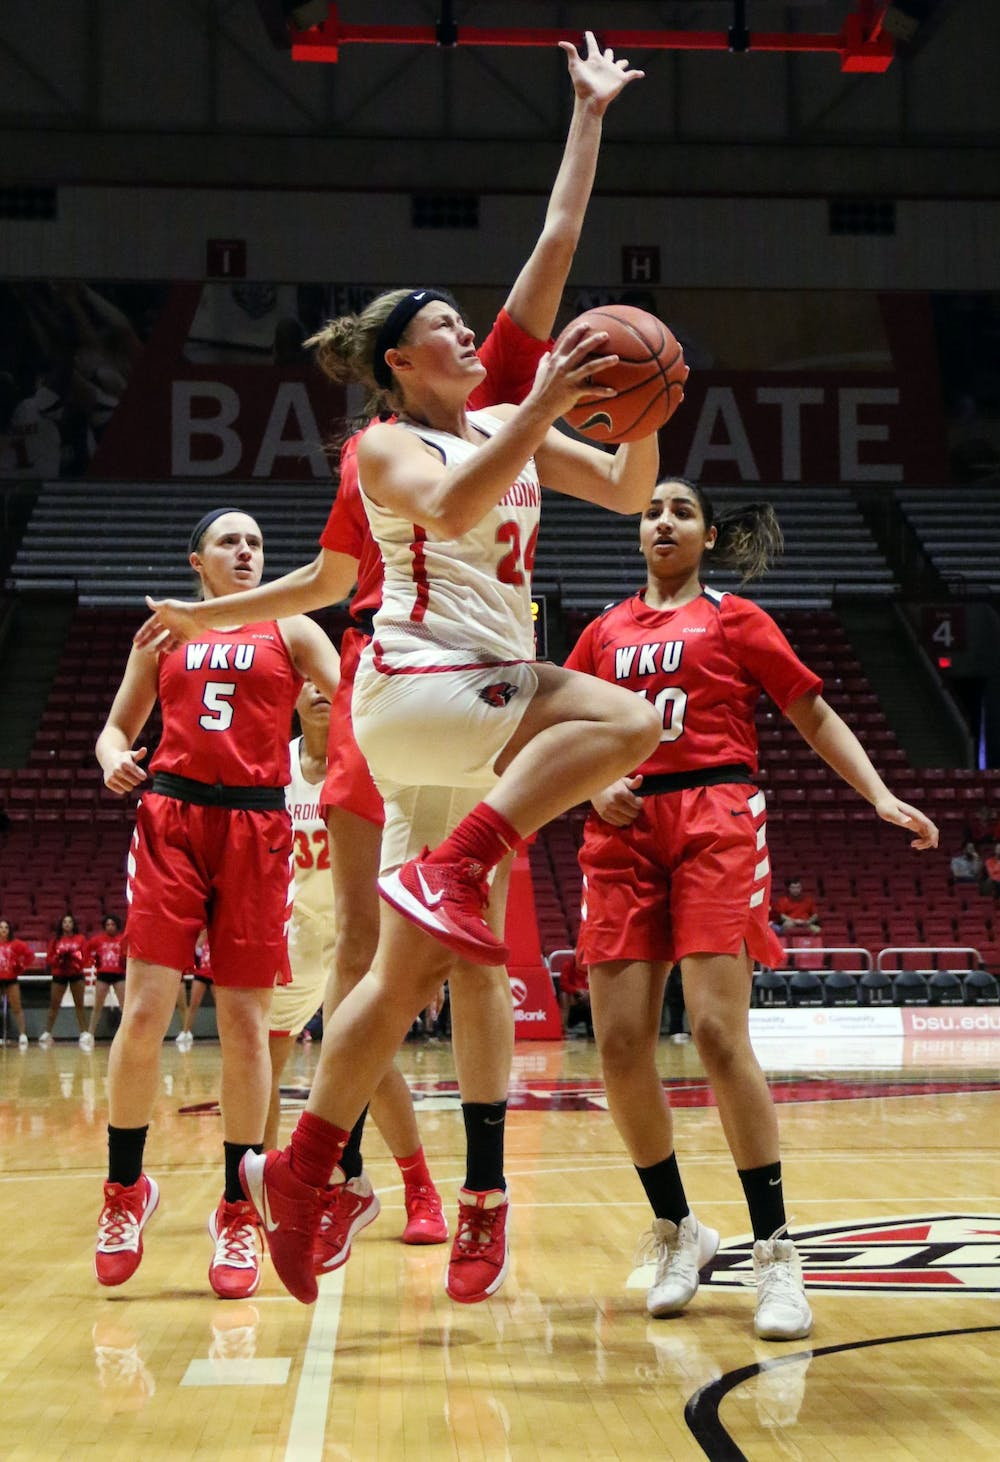 <p>Ball State graduate guard Jasmin Samz goes for a layup during the Cardinals' game against Western Kentucky Dec. 7, 2019, at John E. Worthen Arena. Samz scored 13 points.<strong> Paige Grider, DN</strong></p>